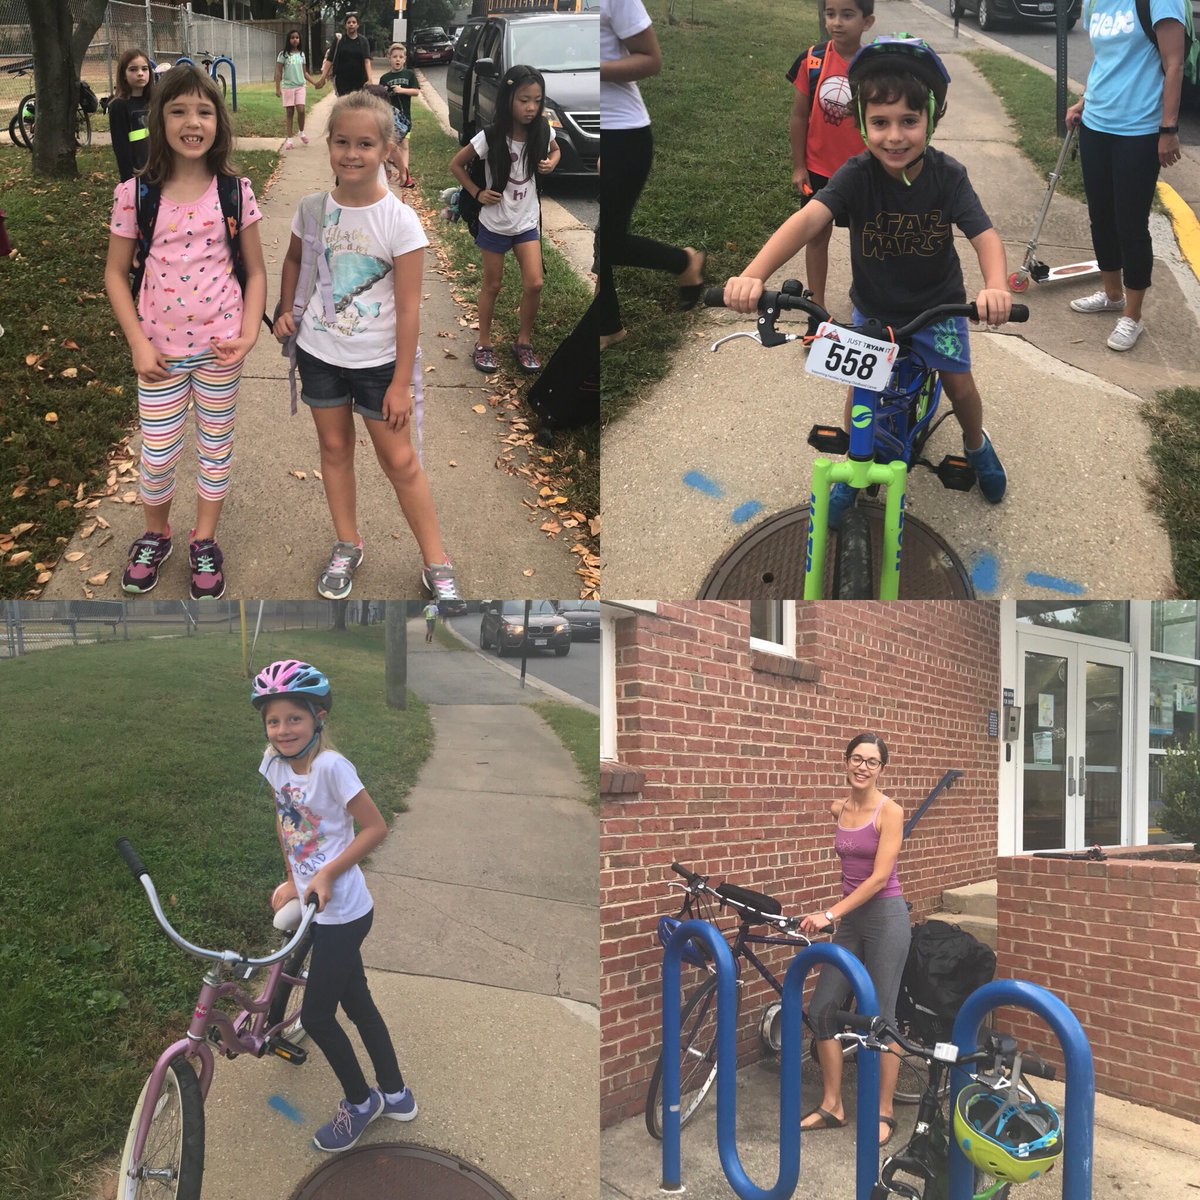 A few more scenes from <a target='_blank' href='http://search.twitter.com/search?q=APSWalk2School'><a target='_blank' href='https://twitter.com/hashtag/APSWalk2School?src=hash'>#APSWalk2School</a></a>   What a fun morning with friends! <a target='_blank' href='http://twitter.com/APSVirginia'>@APSVirginia</a> <a target='_blank' href='http://twitter.com/APSsaferoutes'>@APSsaferoutes</a> <a target='_blank' href='https://t.co/jG0Eizn61I'>https://t.co/jG0Eizn61I</a>